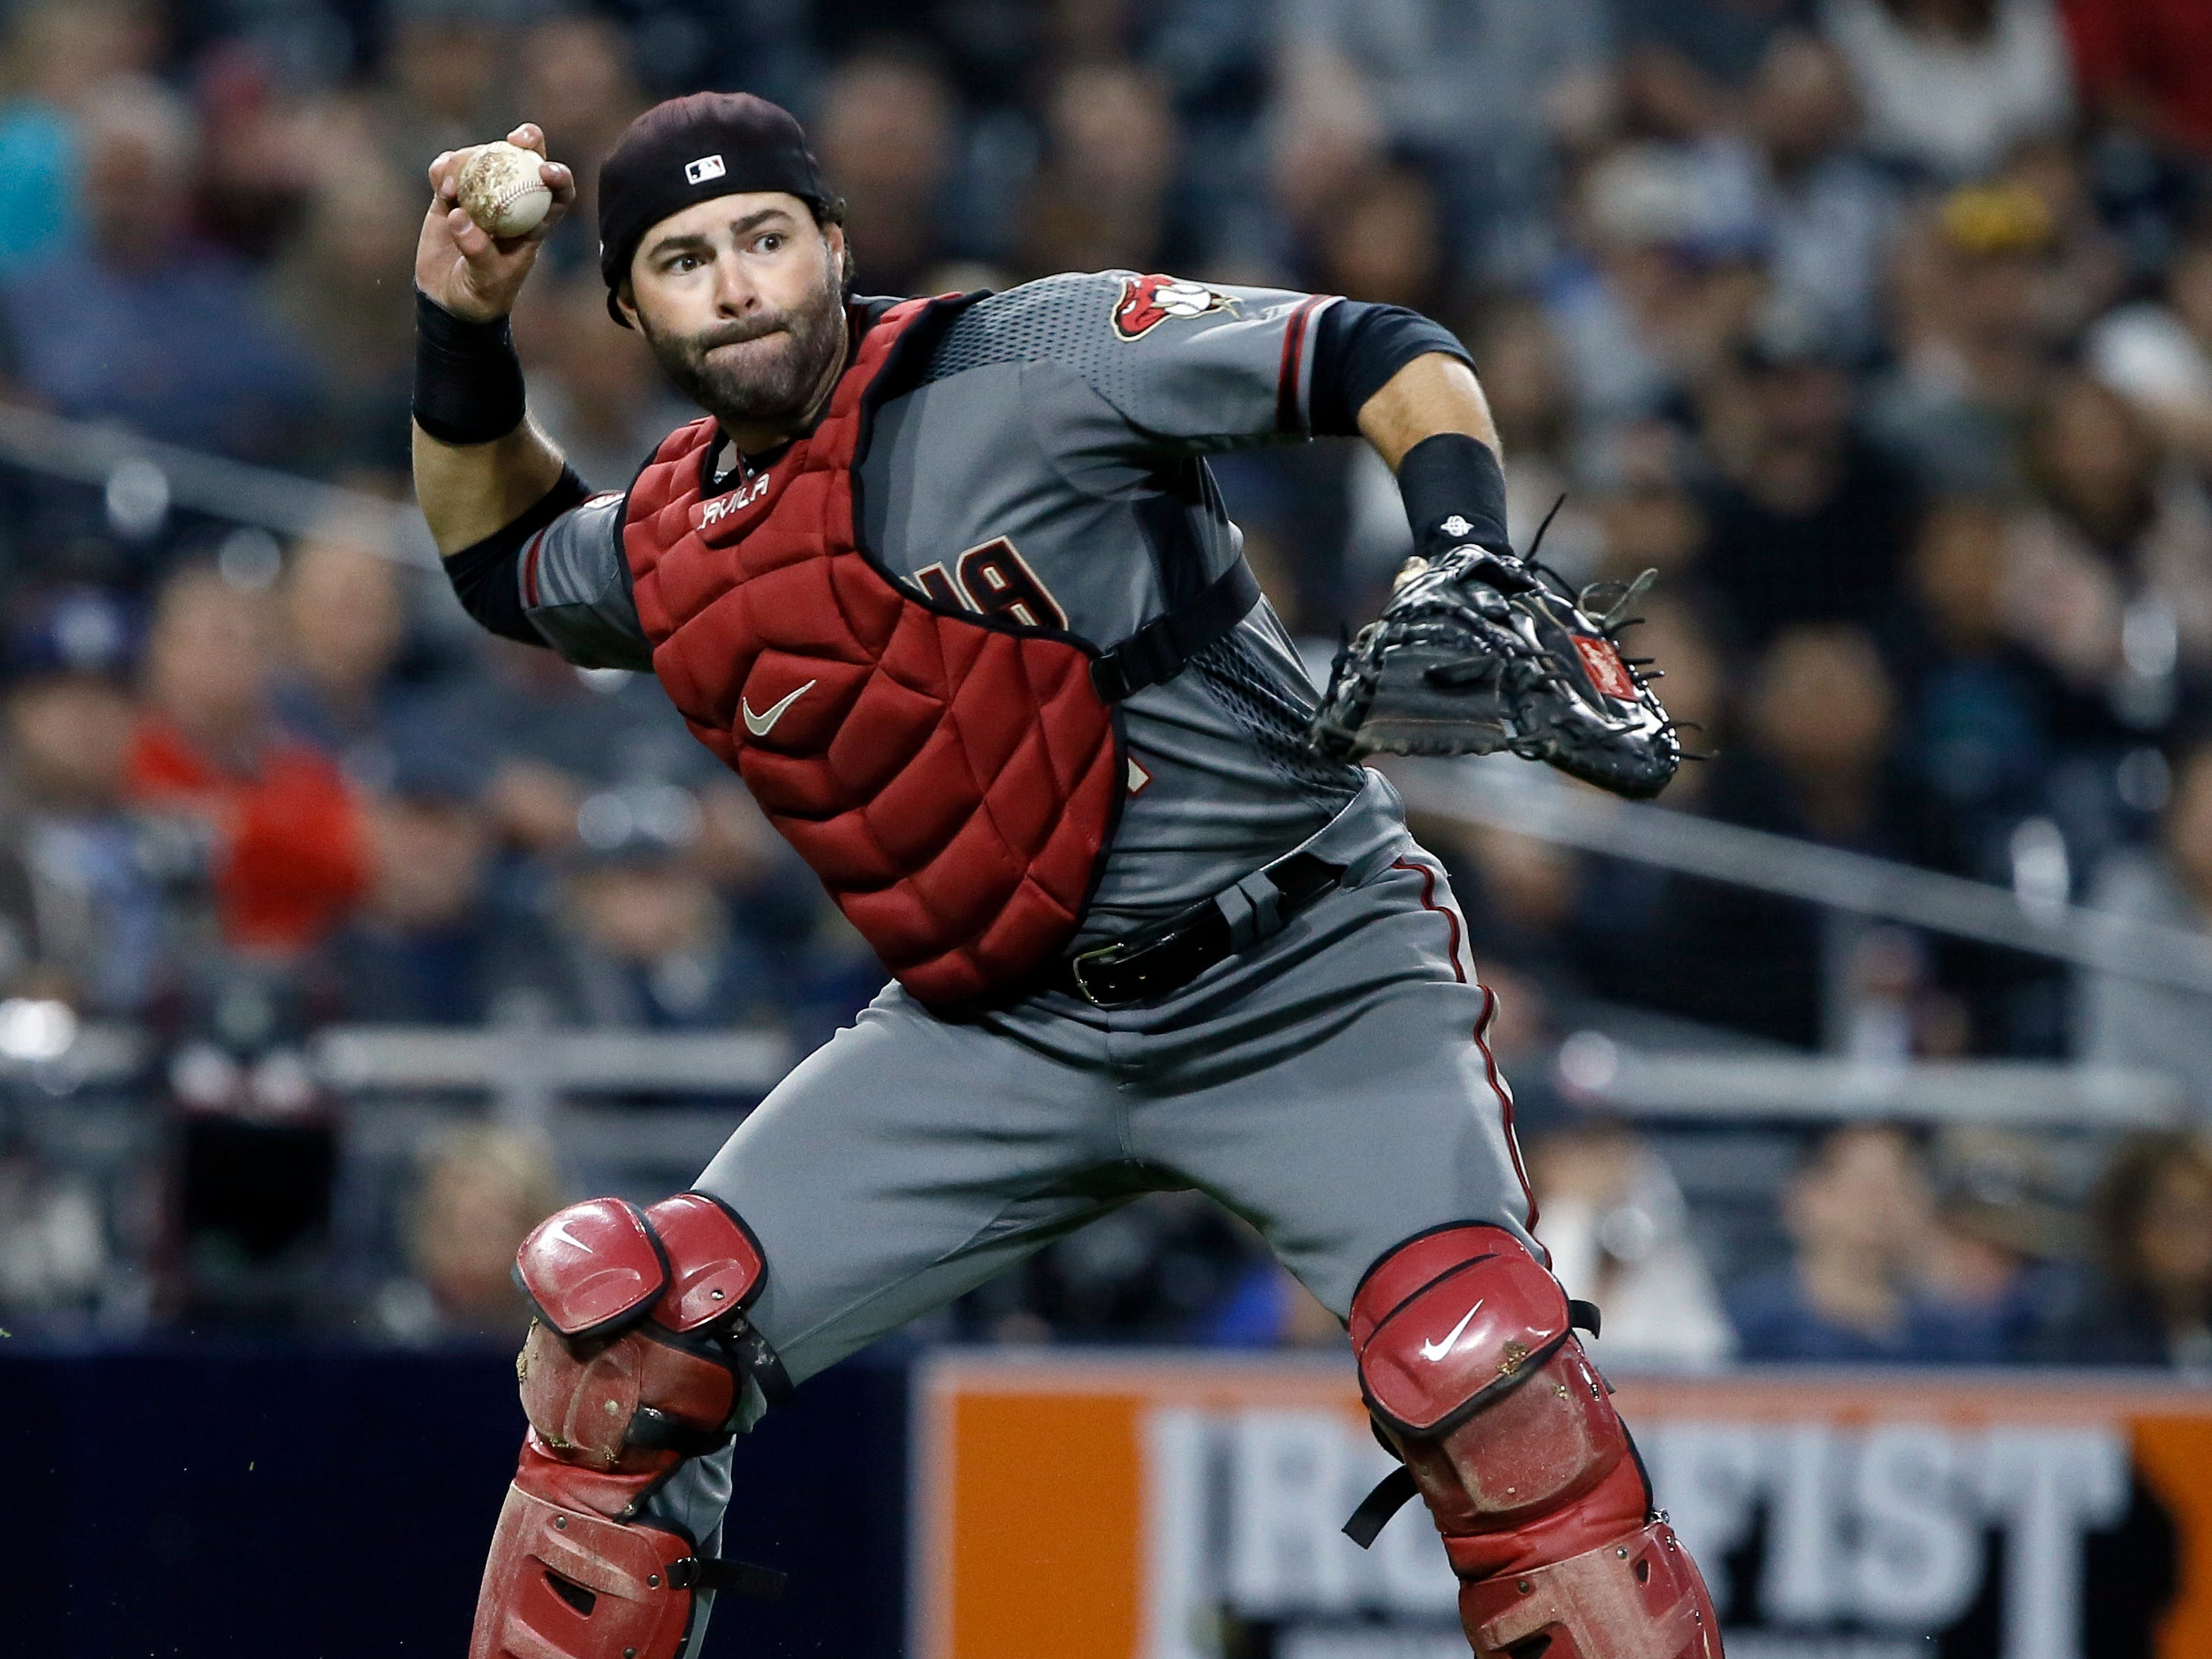 Arizona Diamondbacks catcher Alex Avila throws out San Diego Padres' Wil Myers on a ground out during the first inning of a baseball game in San Diego, Monday, April 1, 2019. (AP Photo/Alex Gallardo)